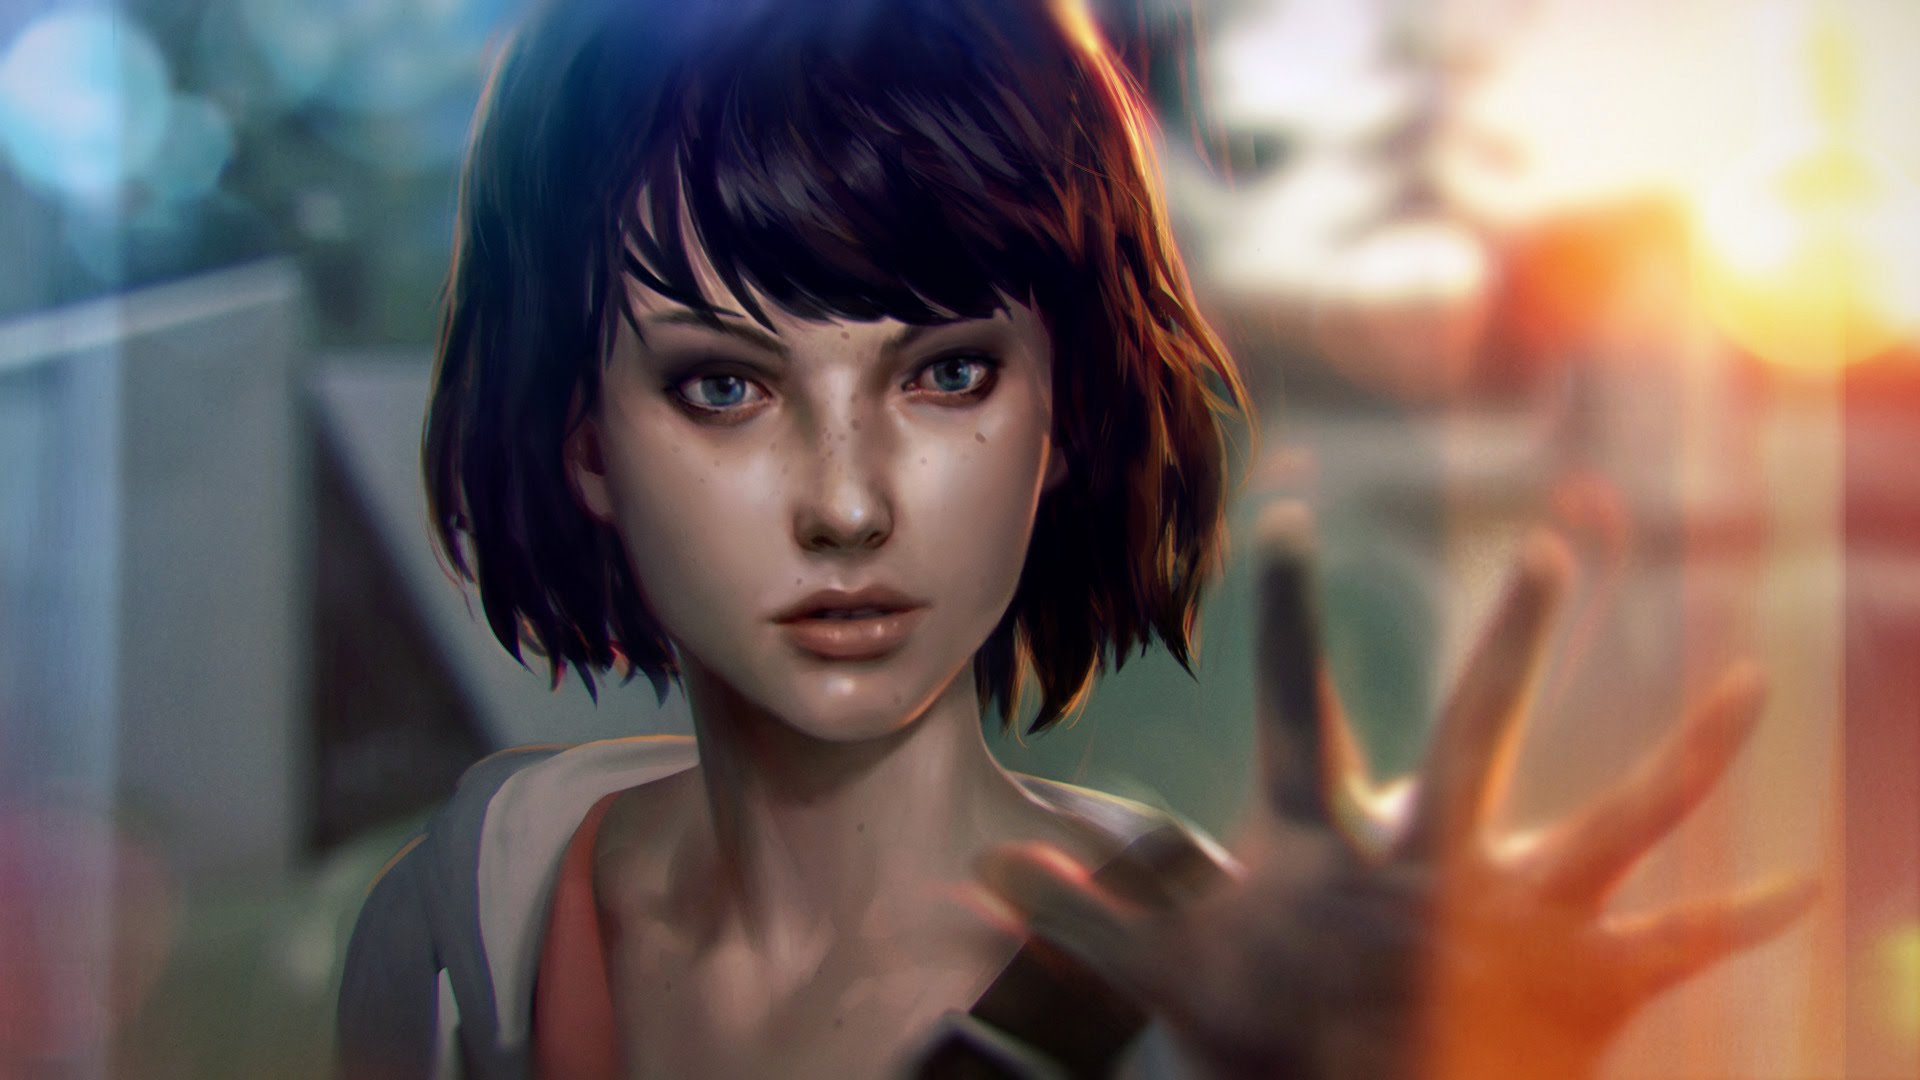 download Life is Strange APK